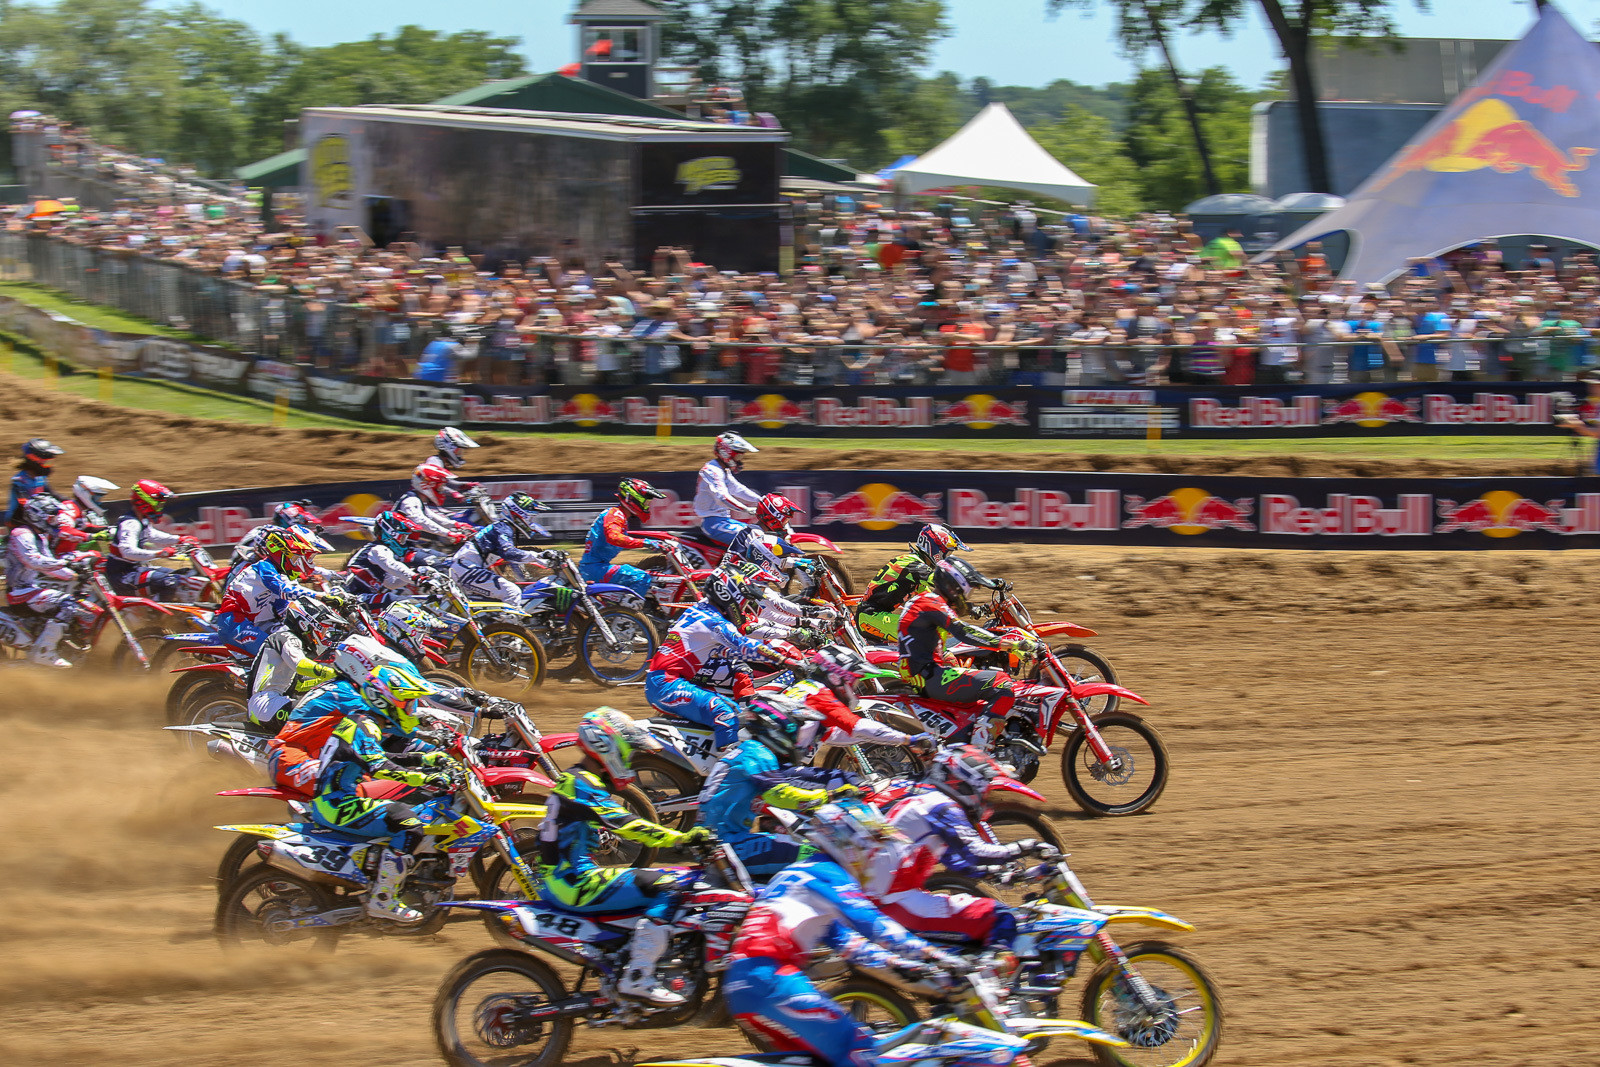 Big crowds, big excitement, and a big celebration are always part of the plan at RedBud. Three foreign riders, Toshiki Tomita, Marvin Musquin, and Jake Nicholls, helped get the party started by leading the way down the start straight in moto two.